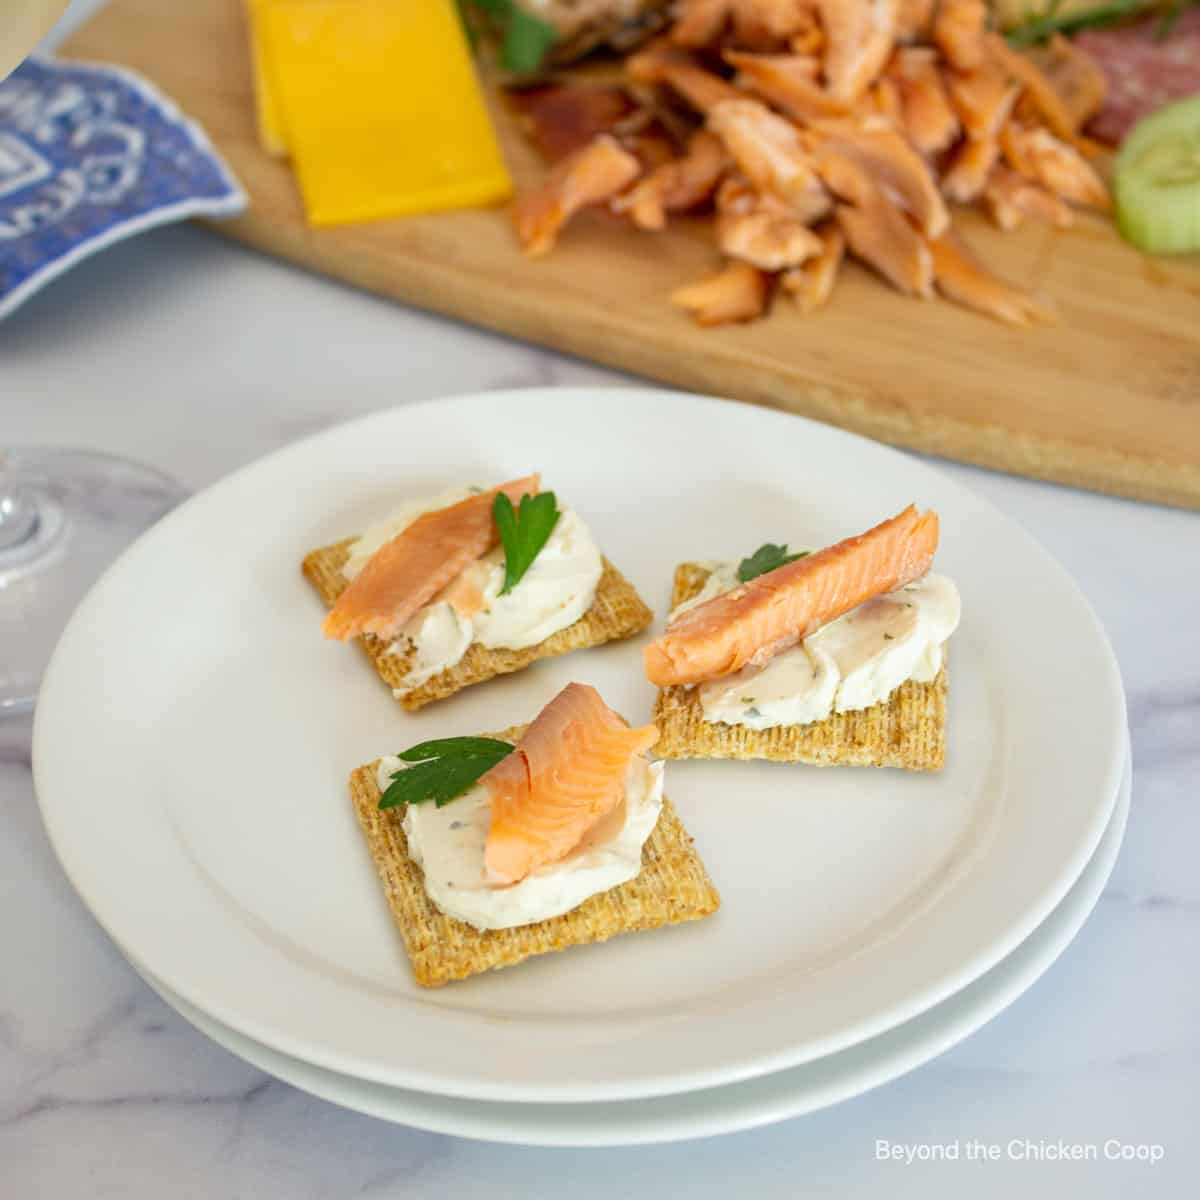 Smoked salmon on crackers with cream cheese.